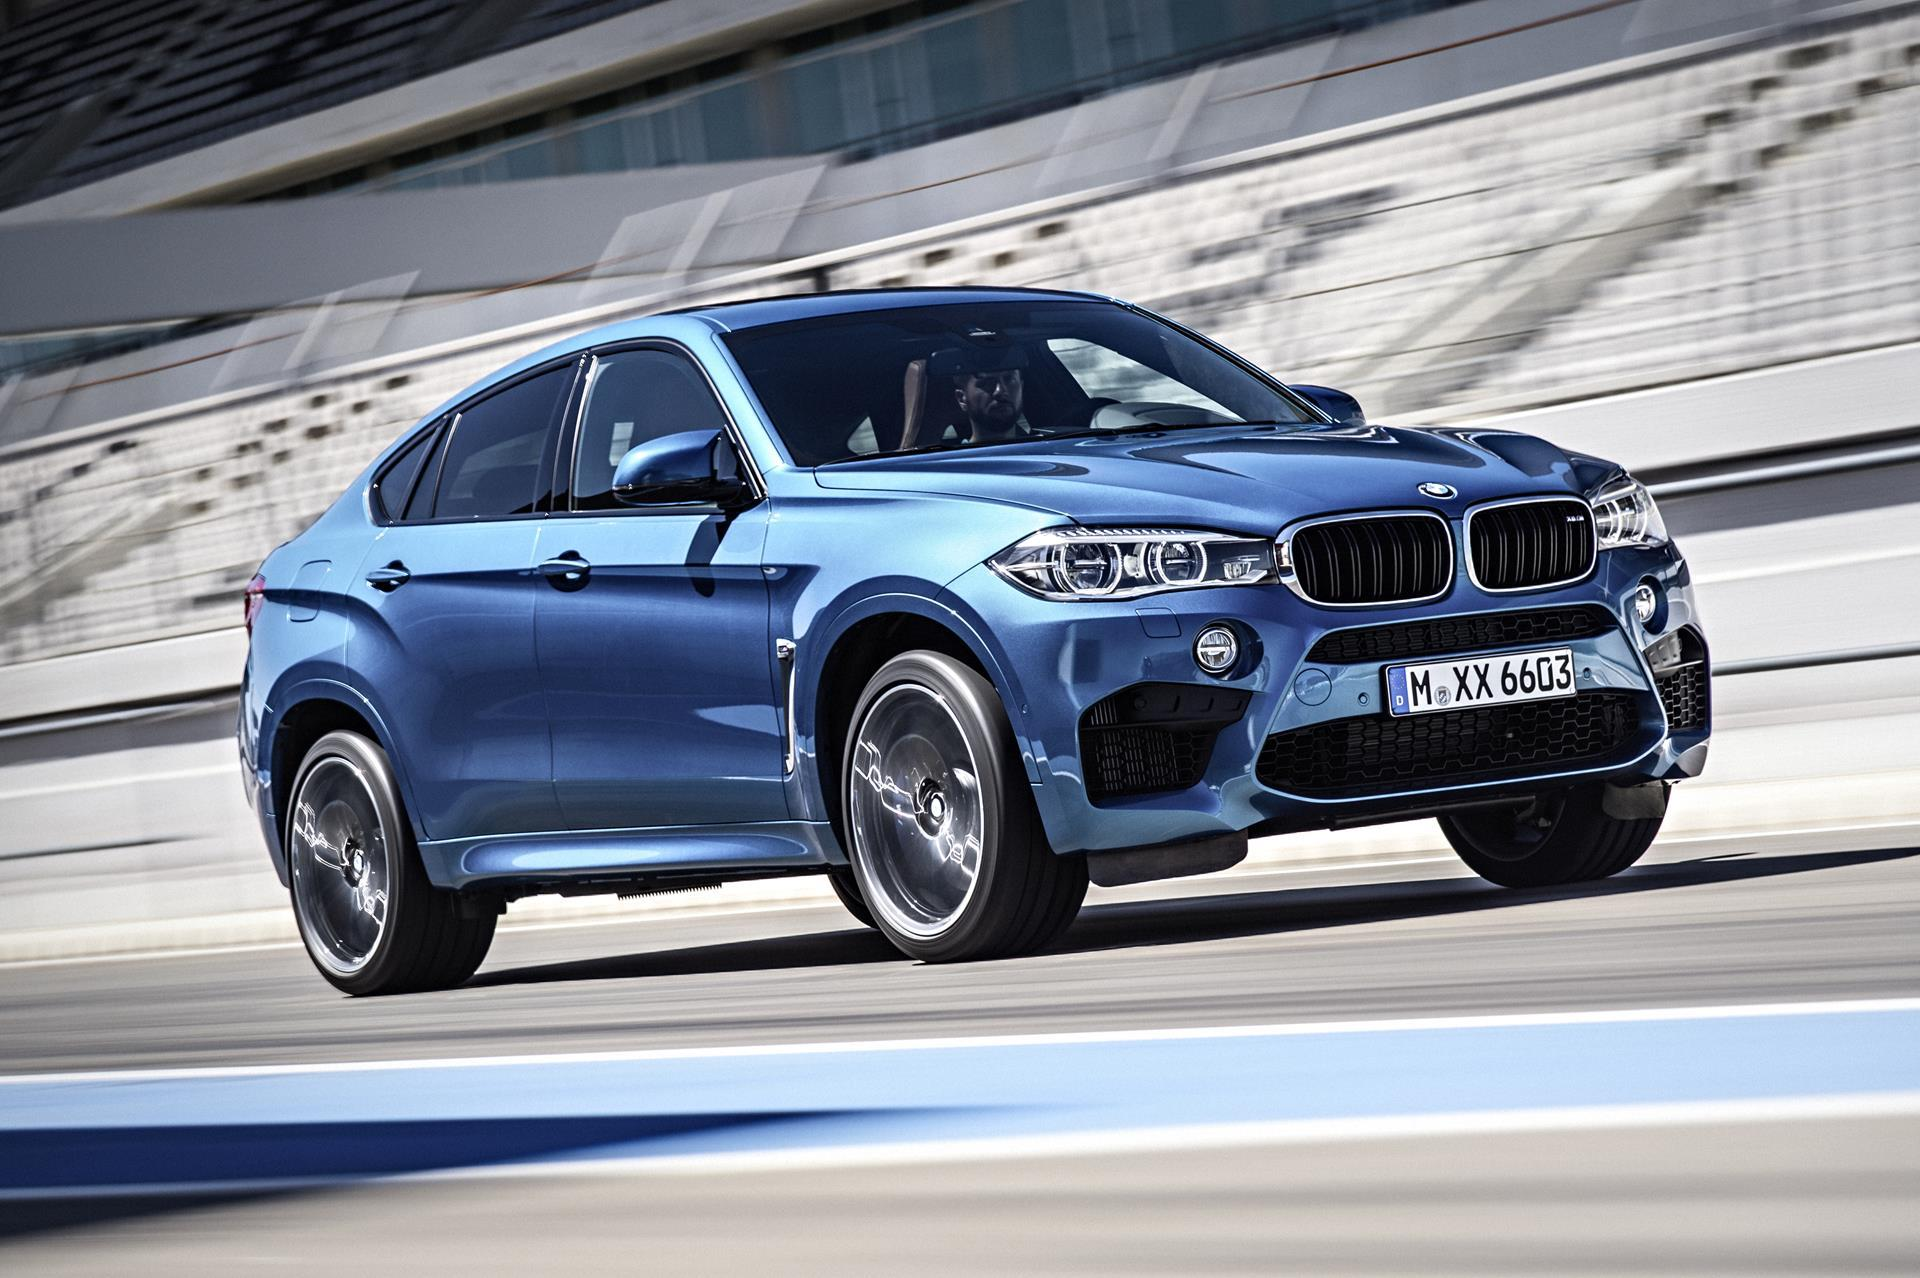 2015 Bmw X6 M News And Information Conceptcarz Com